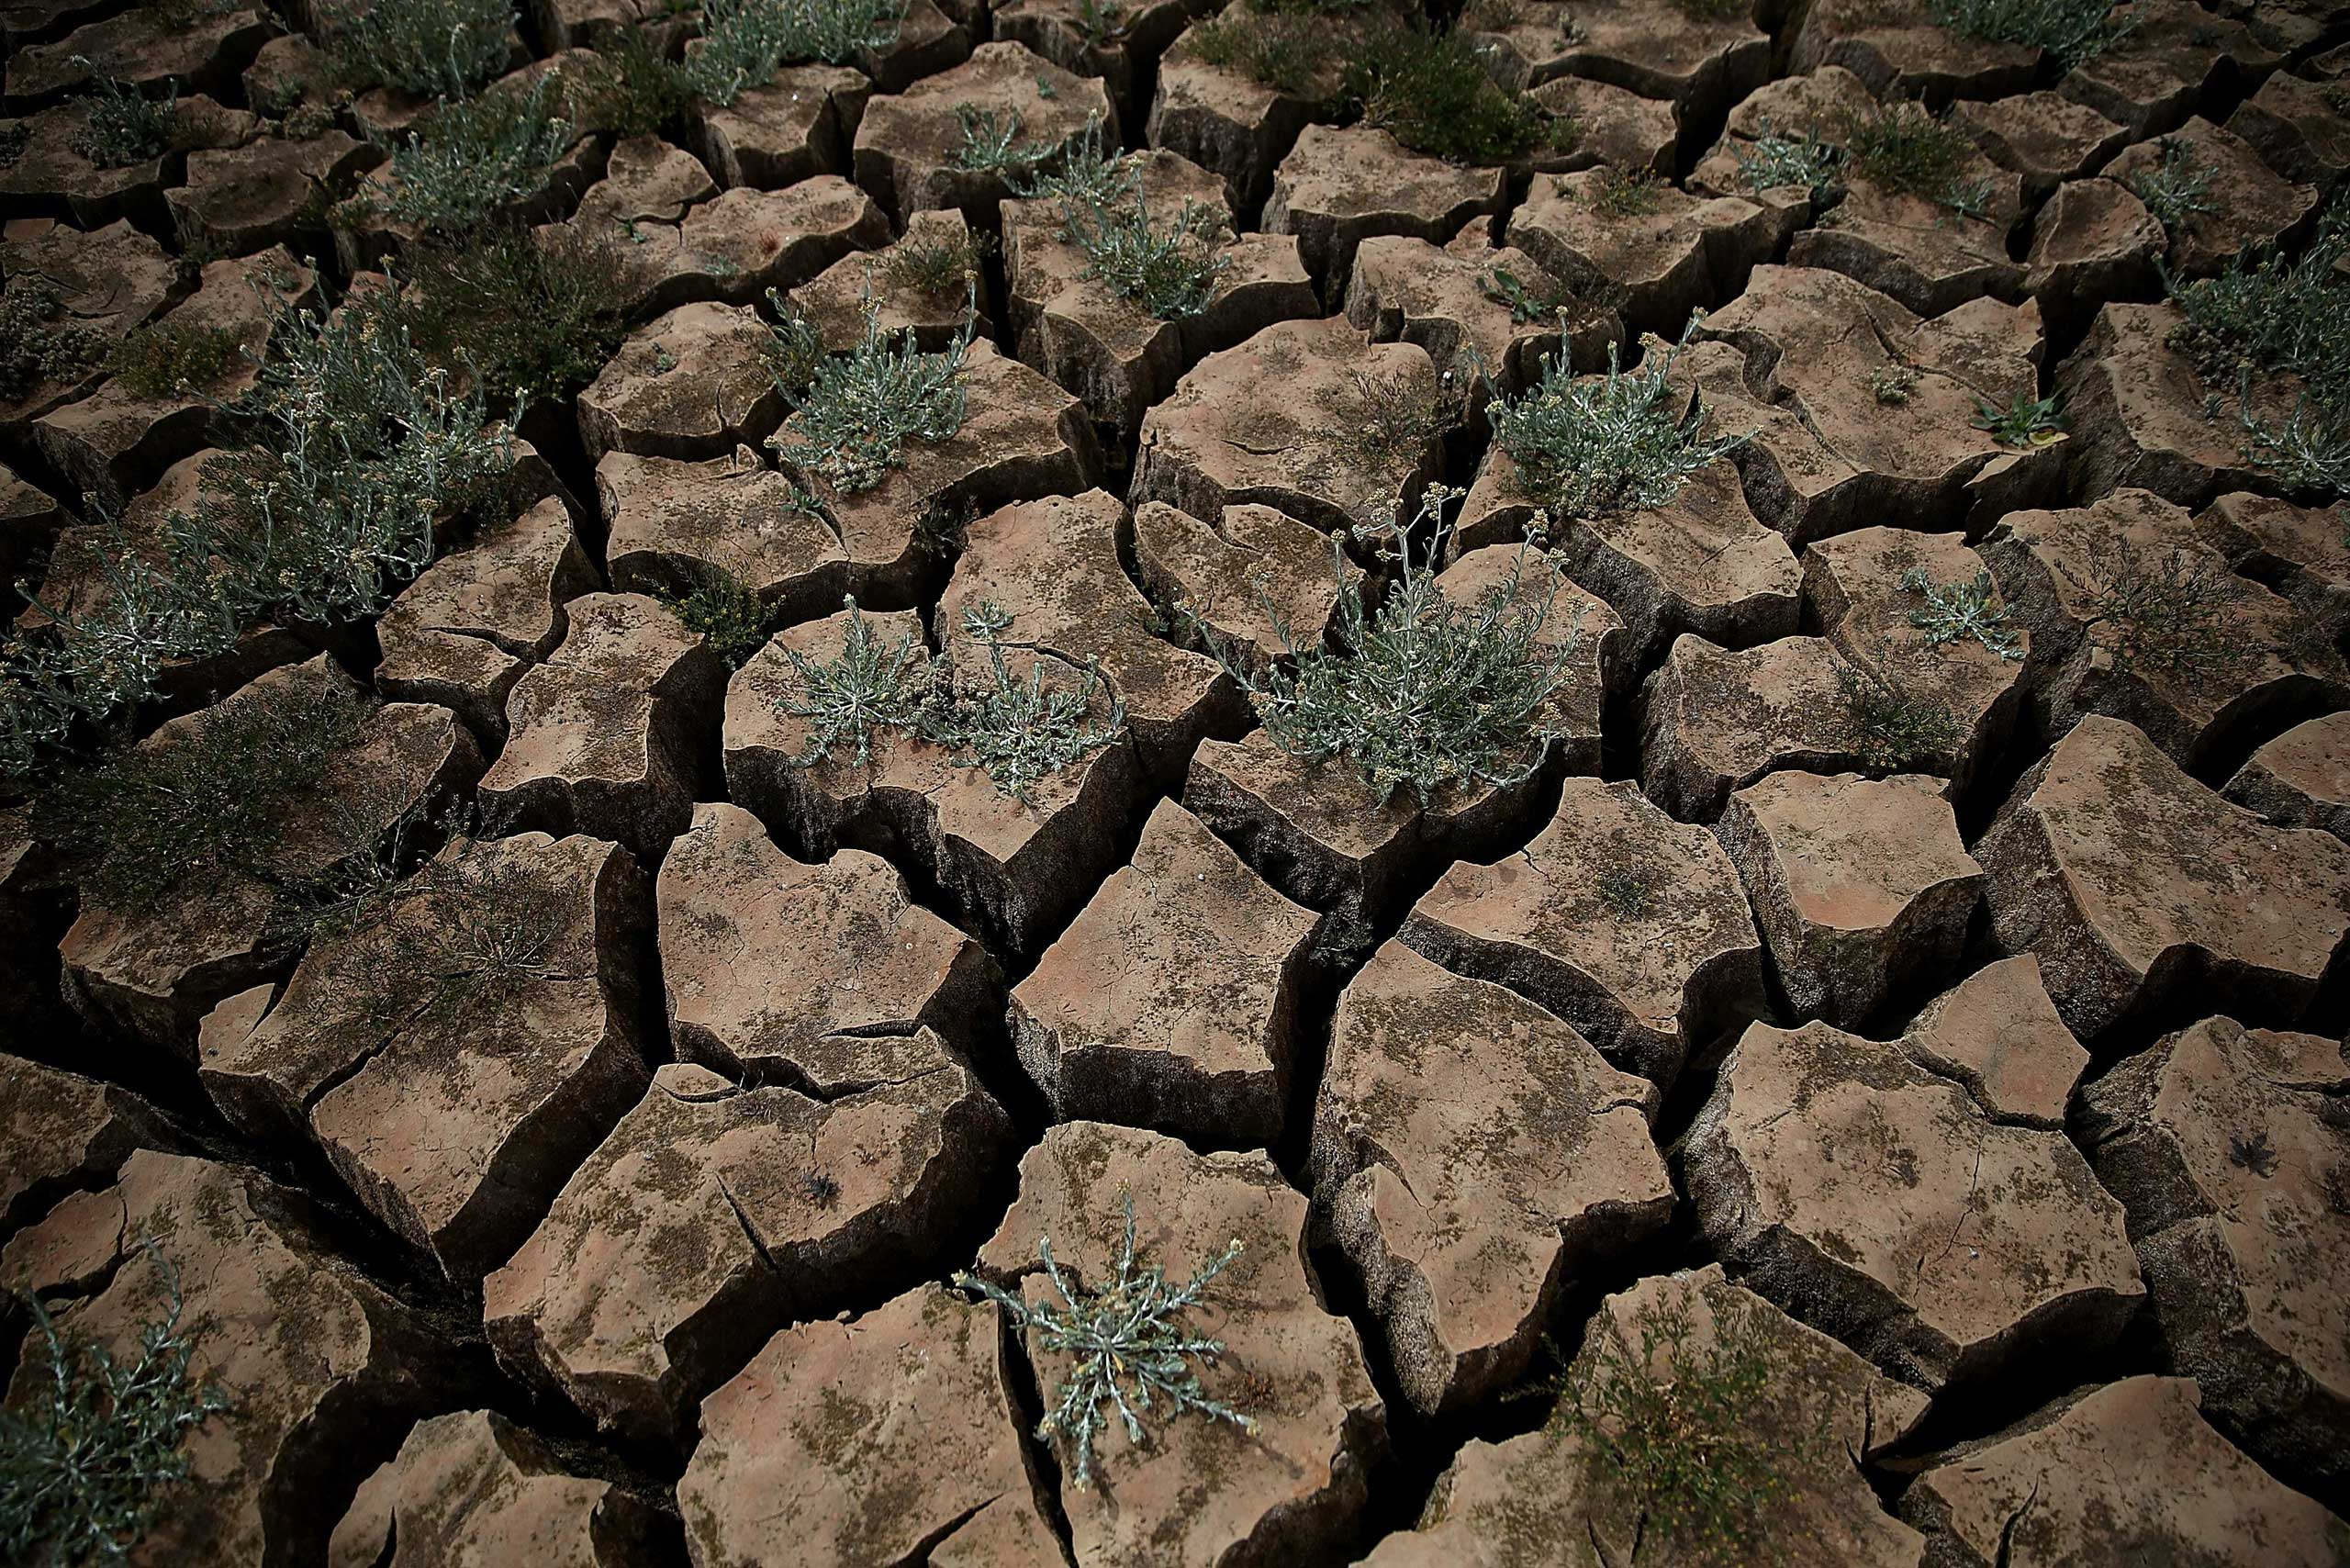 Weeds grow in dry cracked earth that used to be the bottom of Lake McClure in La Grange, California on March 24, 2015.